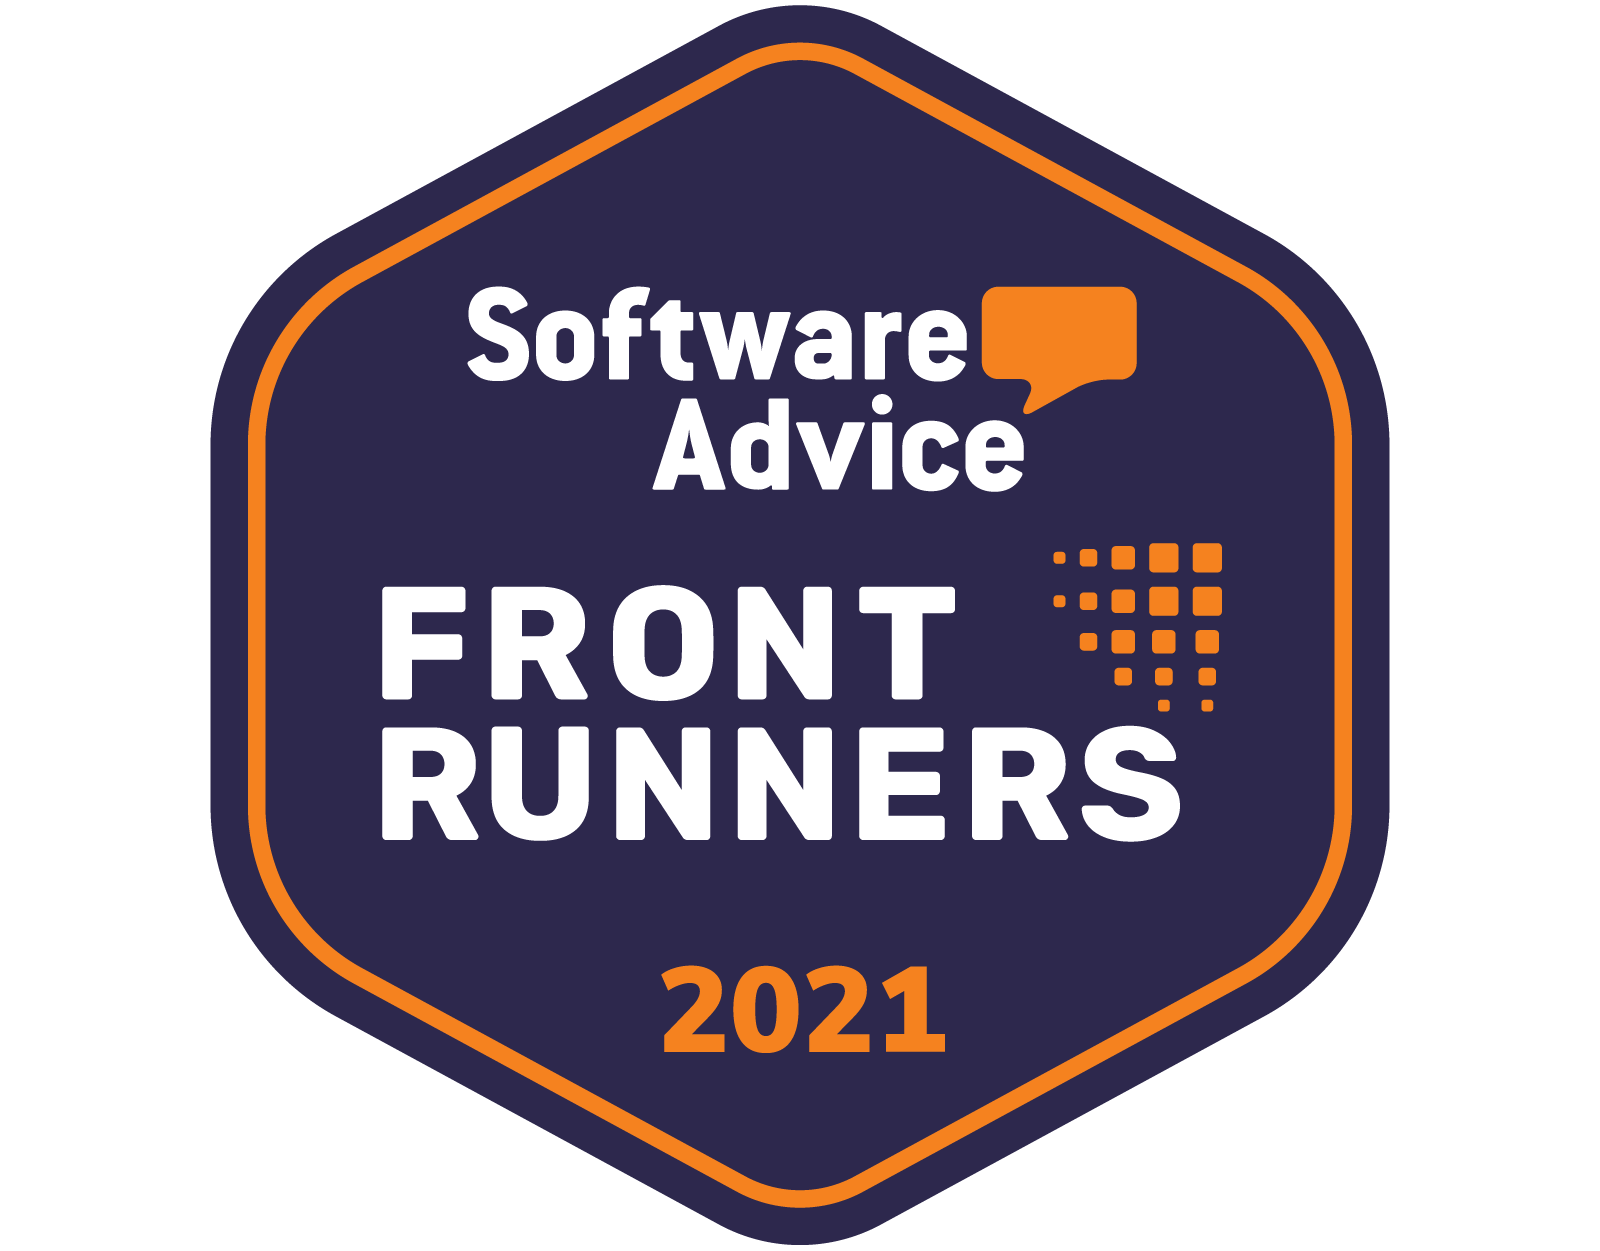 Software Advice Frontrunners for Inventory Management Jan-21